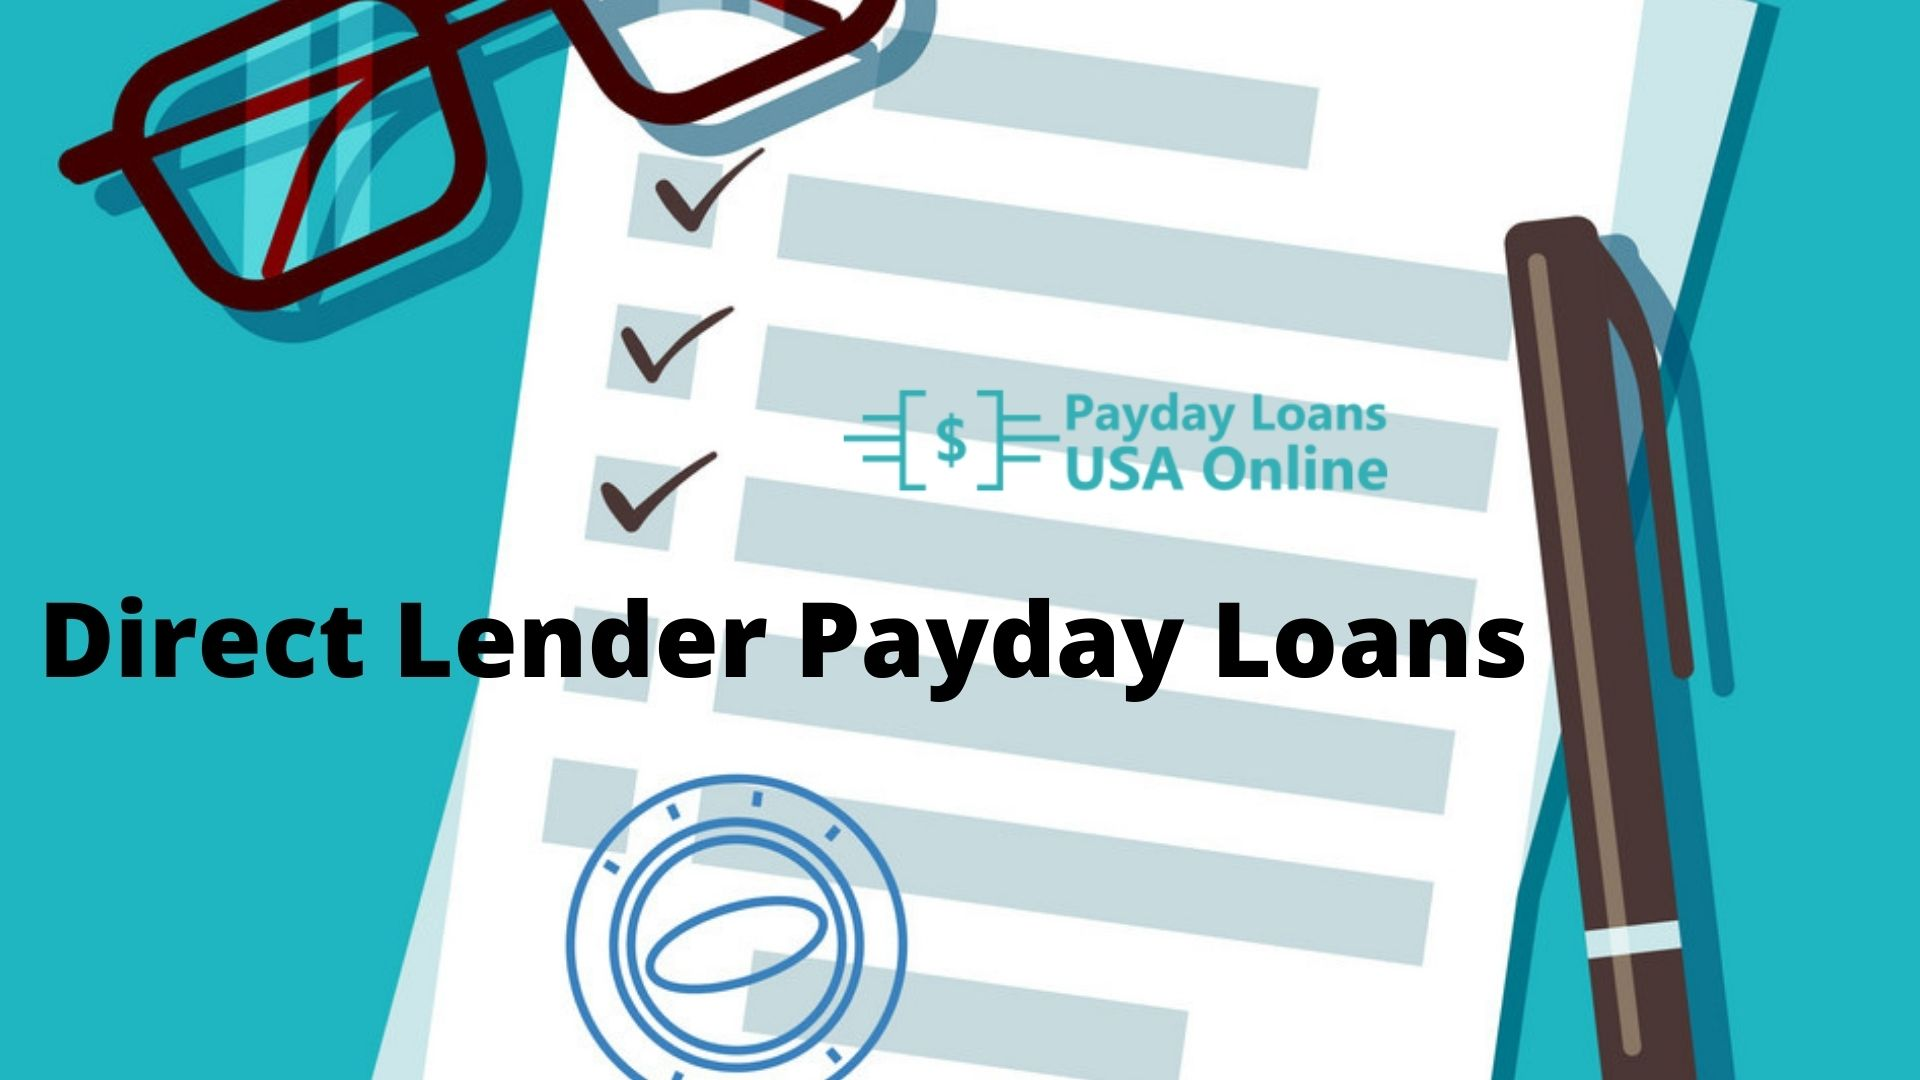 Online Payday Loans from Direct Lenders